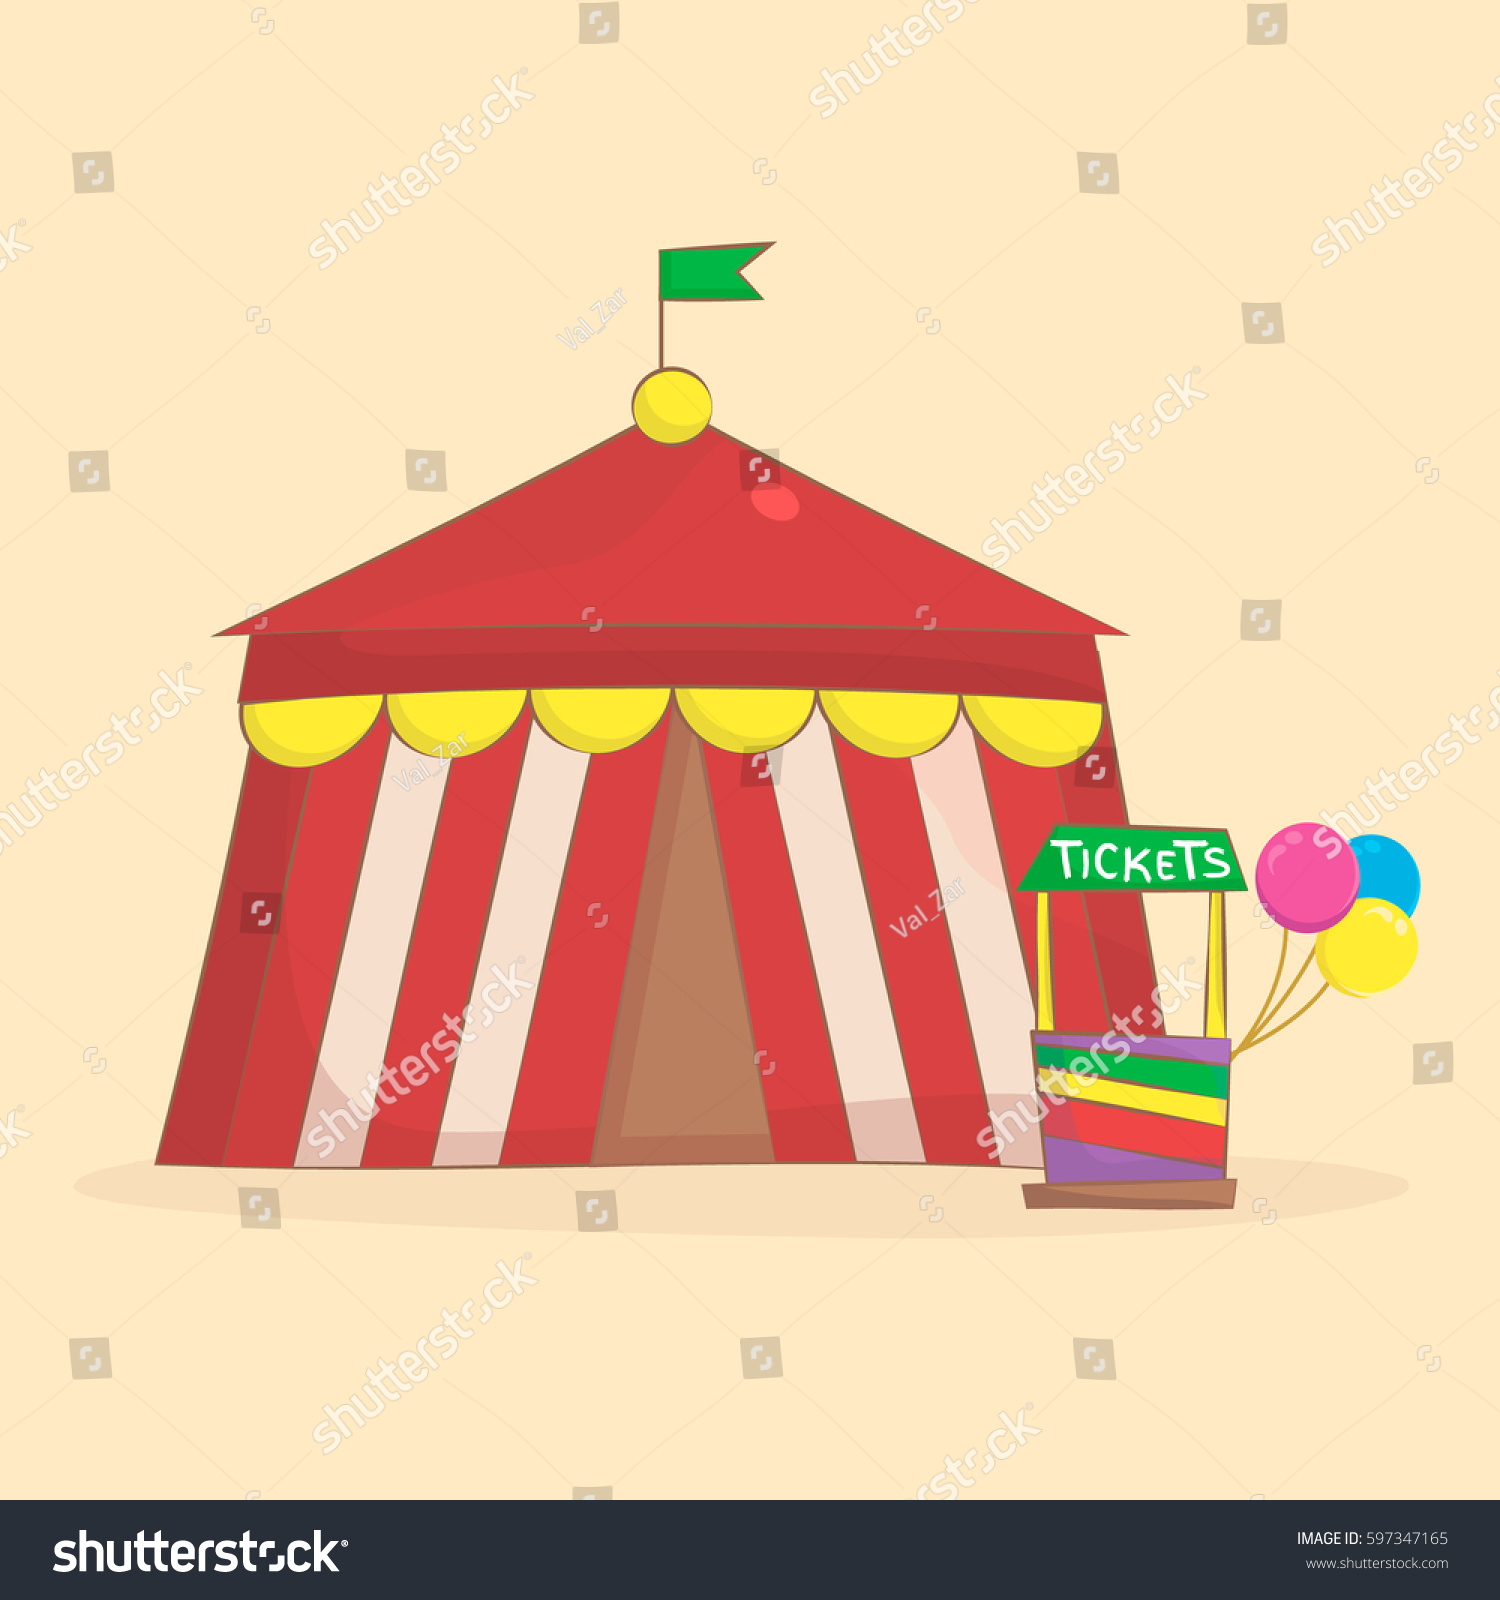 Circus Tent. Amusement Park and Circus Icon in Cartoon Style. Vector illustration.  sc 1 st  Shutterstock & Circus Tent Amusement Park Circus Icon Stock Vector 597347165 ...